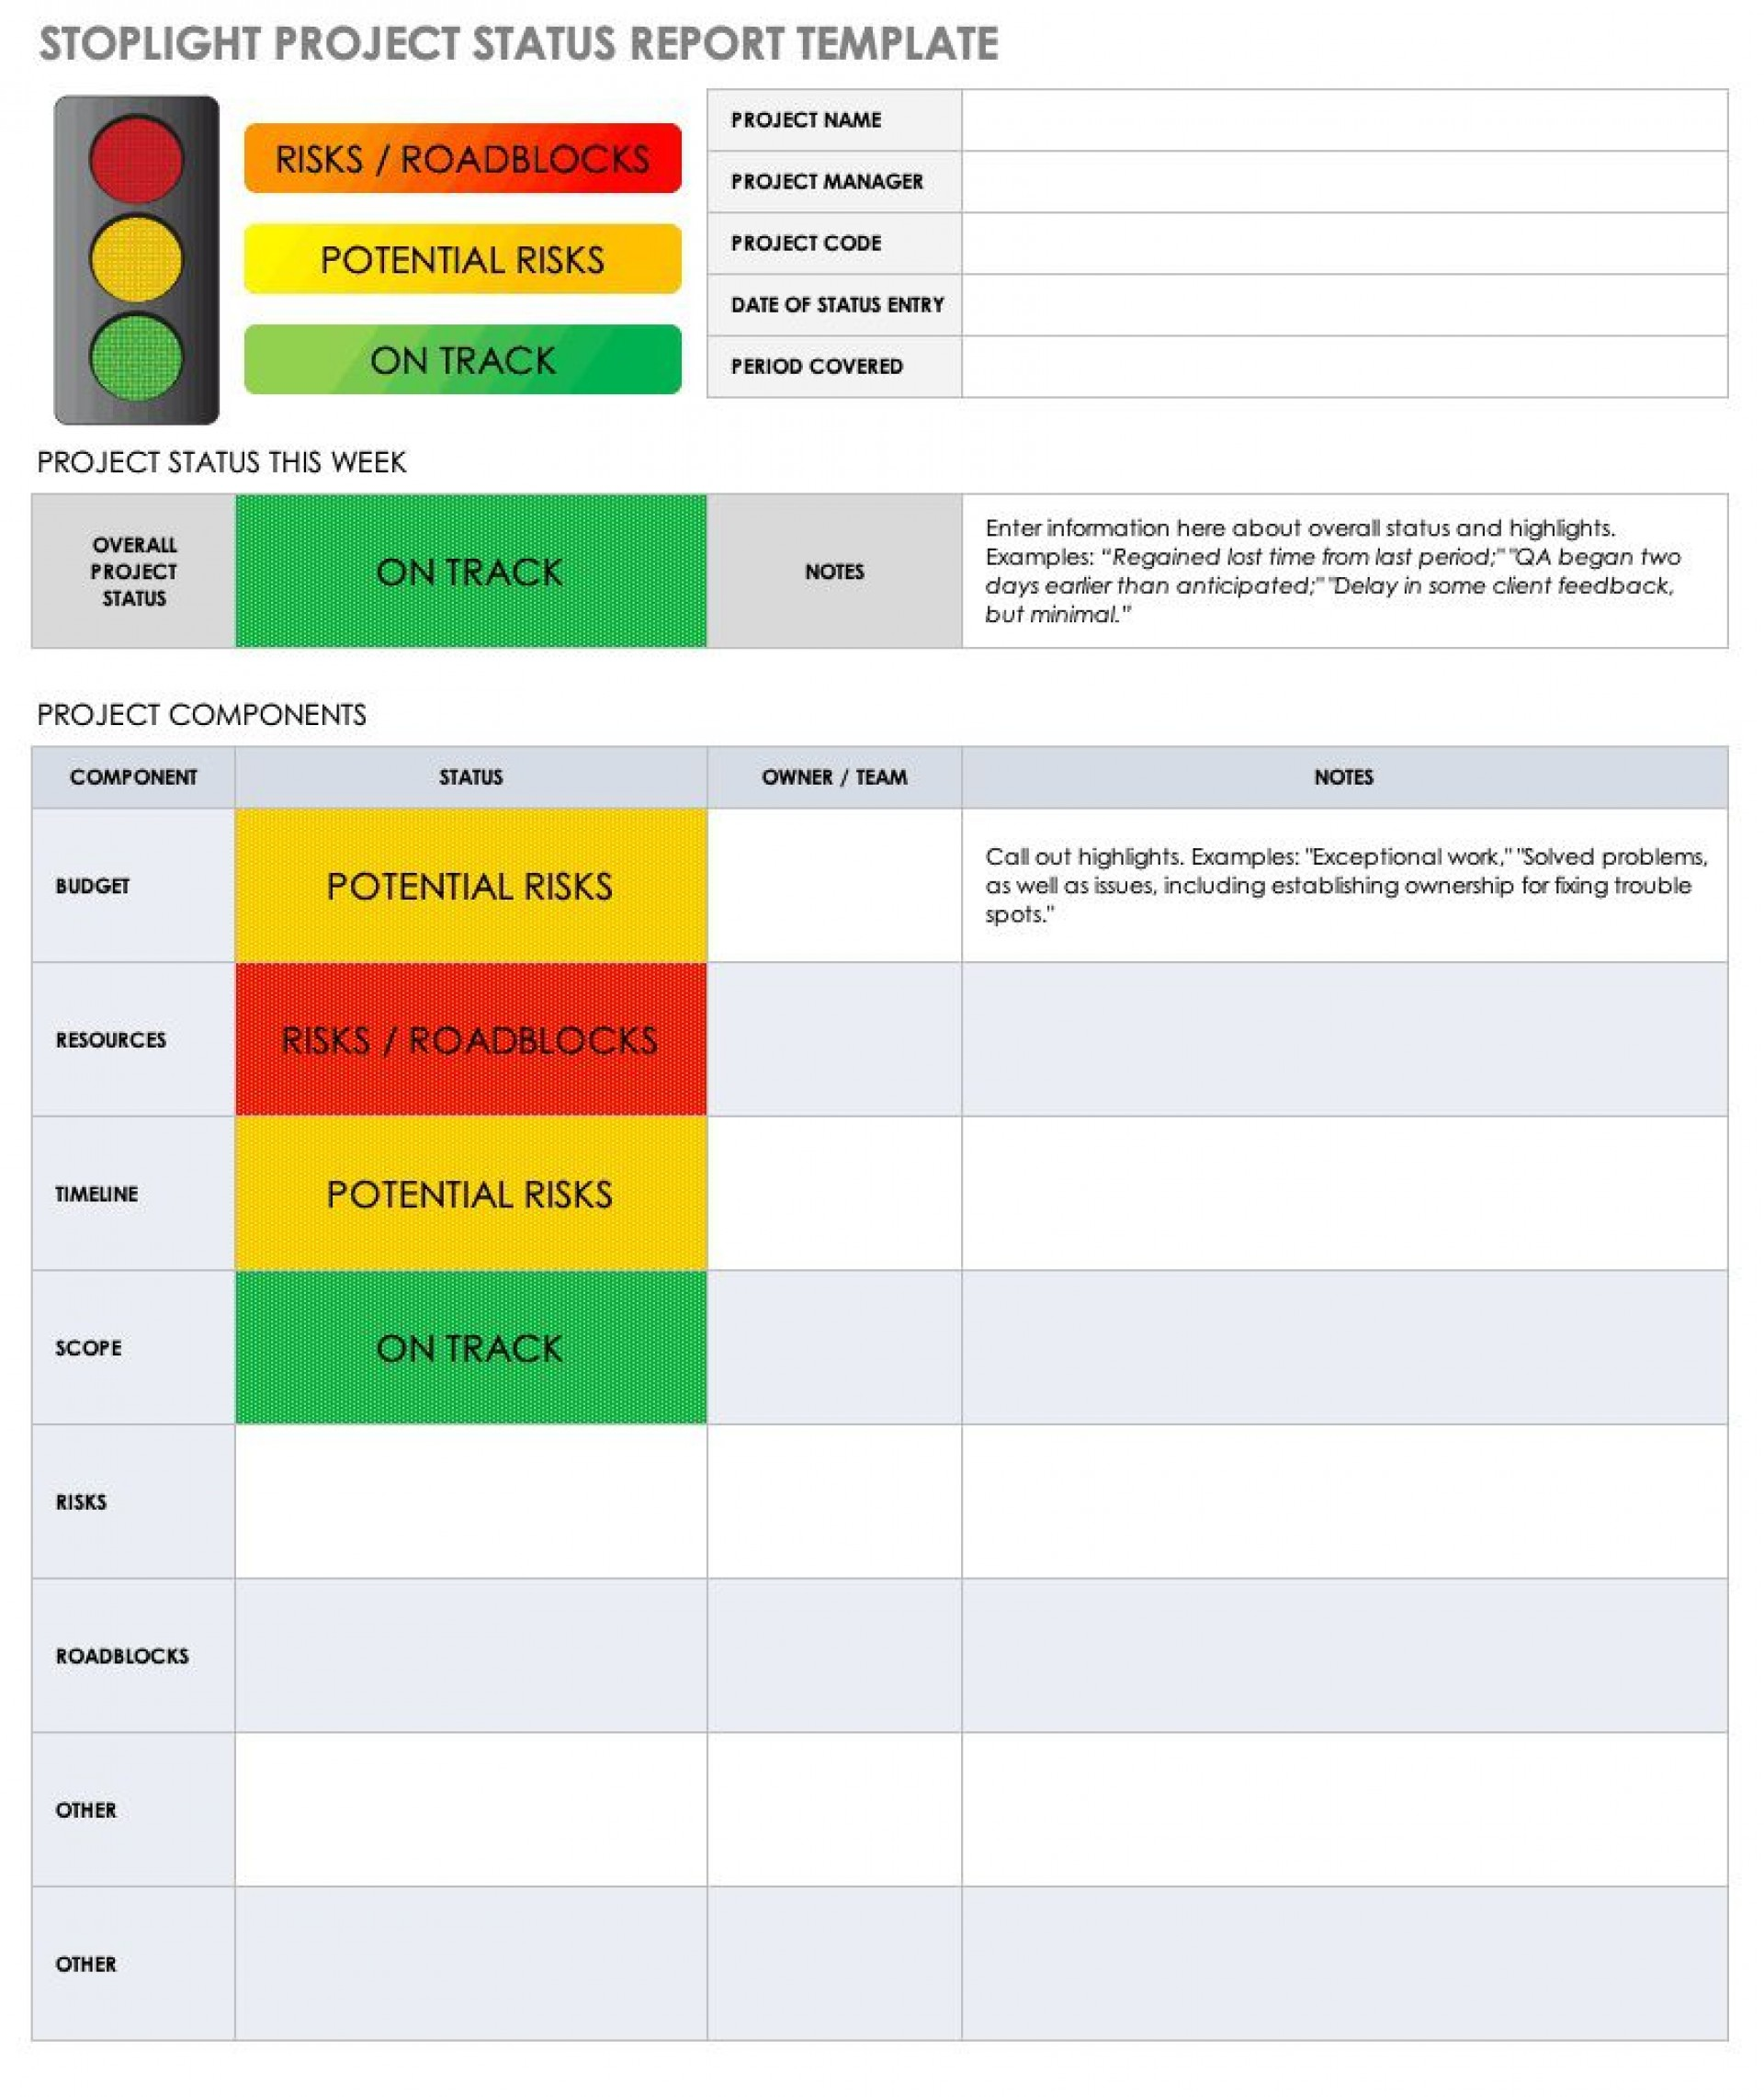 005 Stirring Project Statu Report Template Excel Photo  Free Progres Format Xl1920